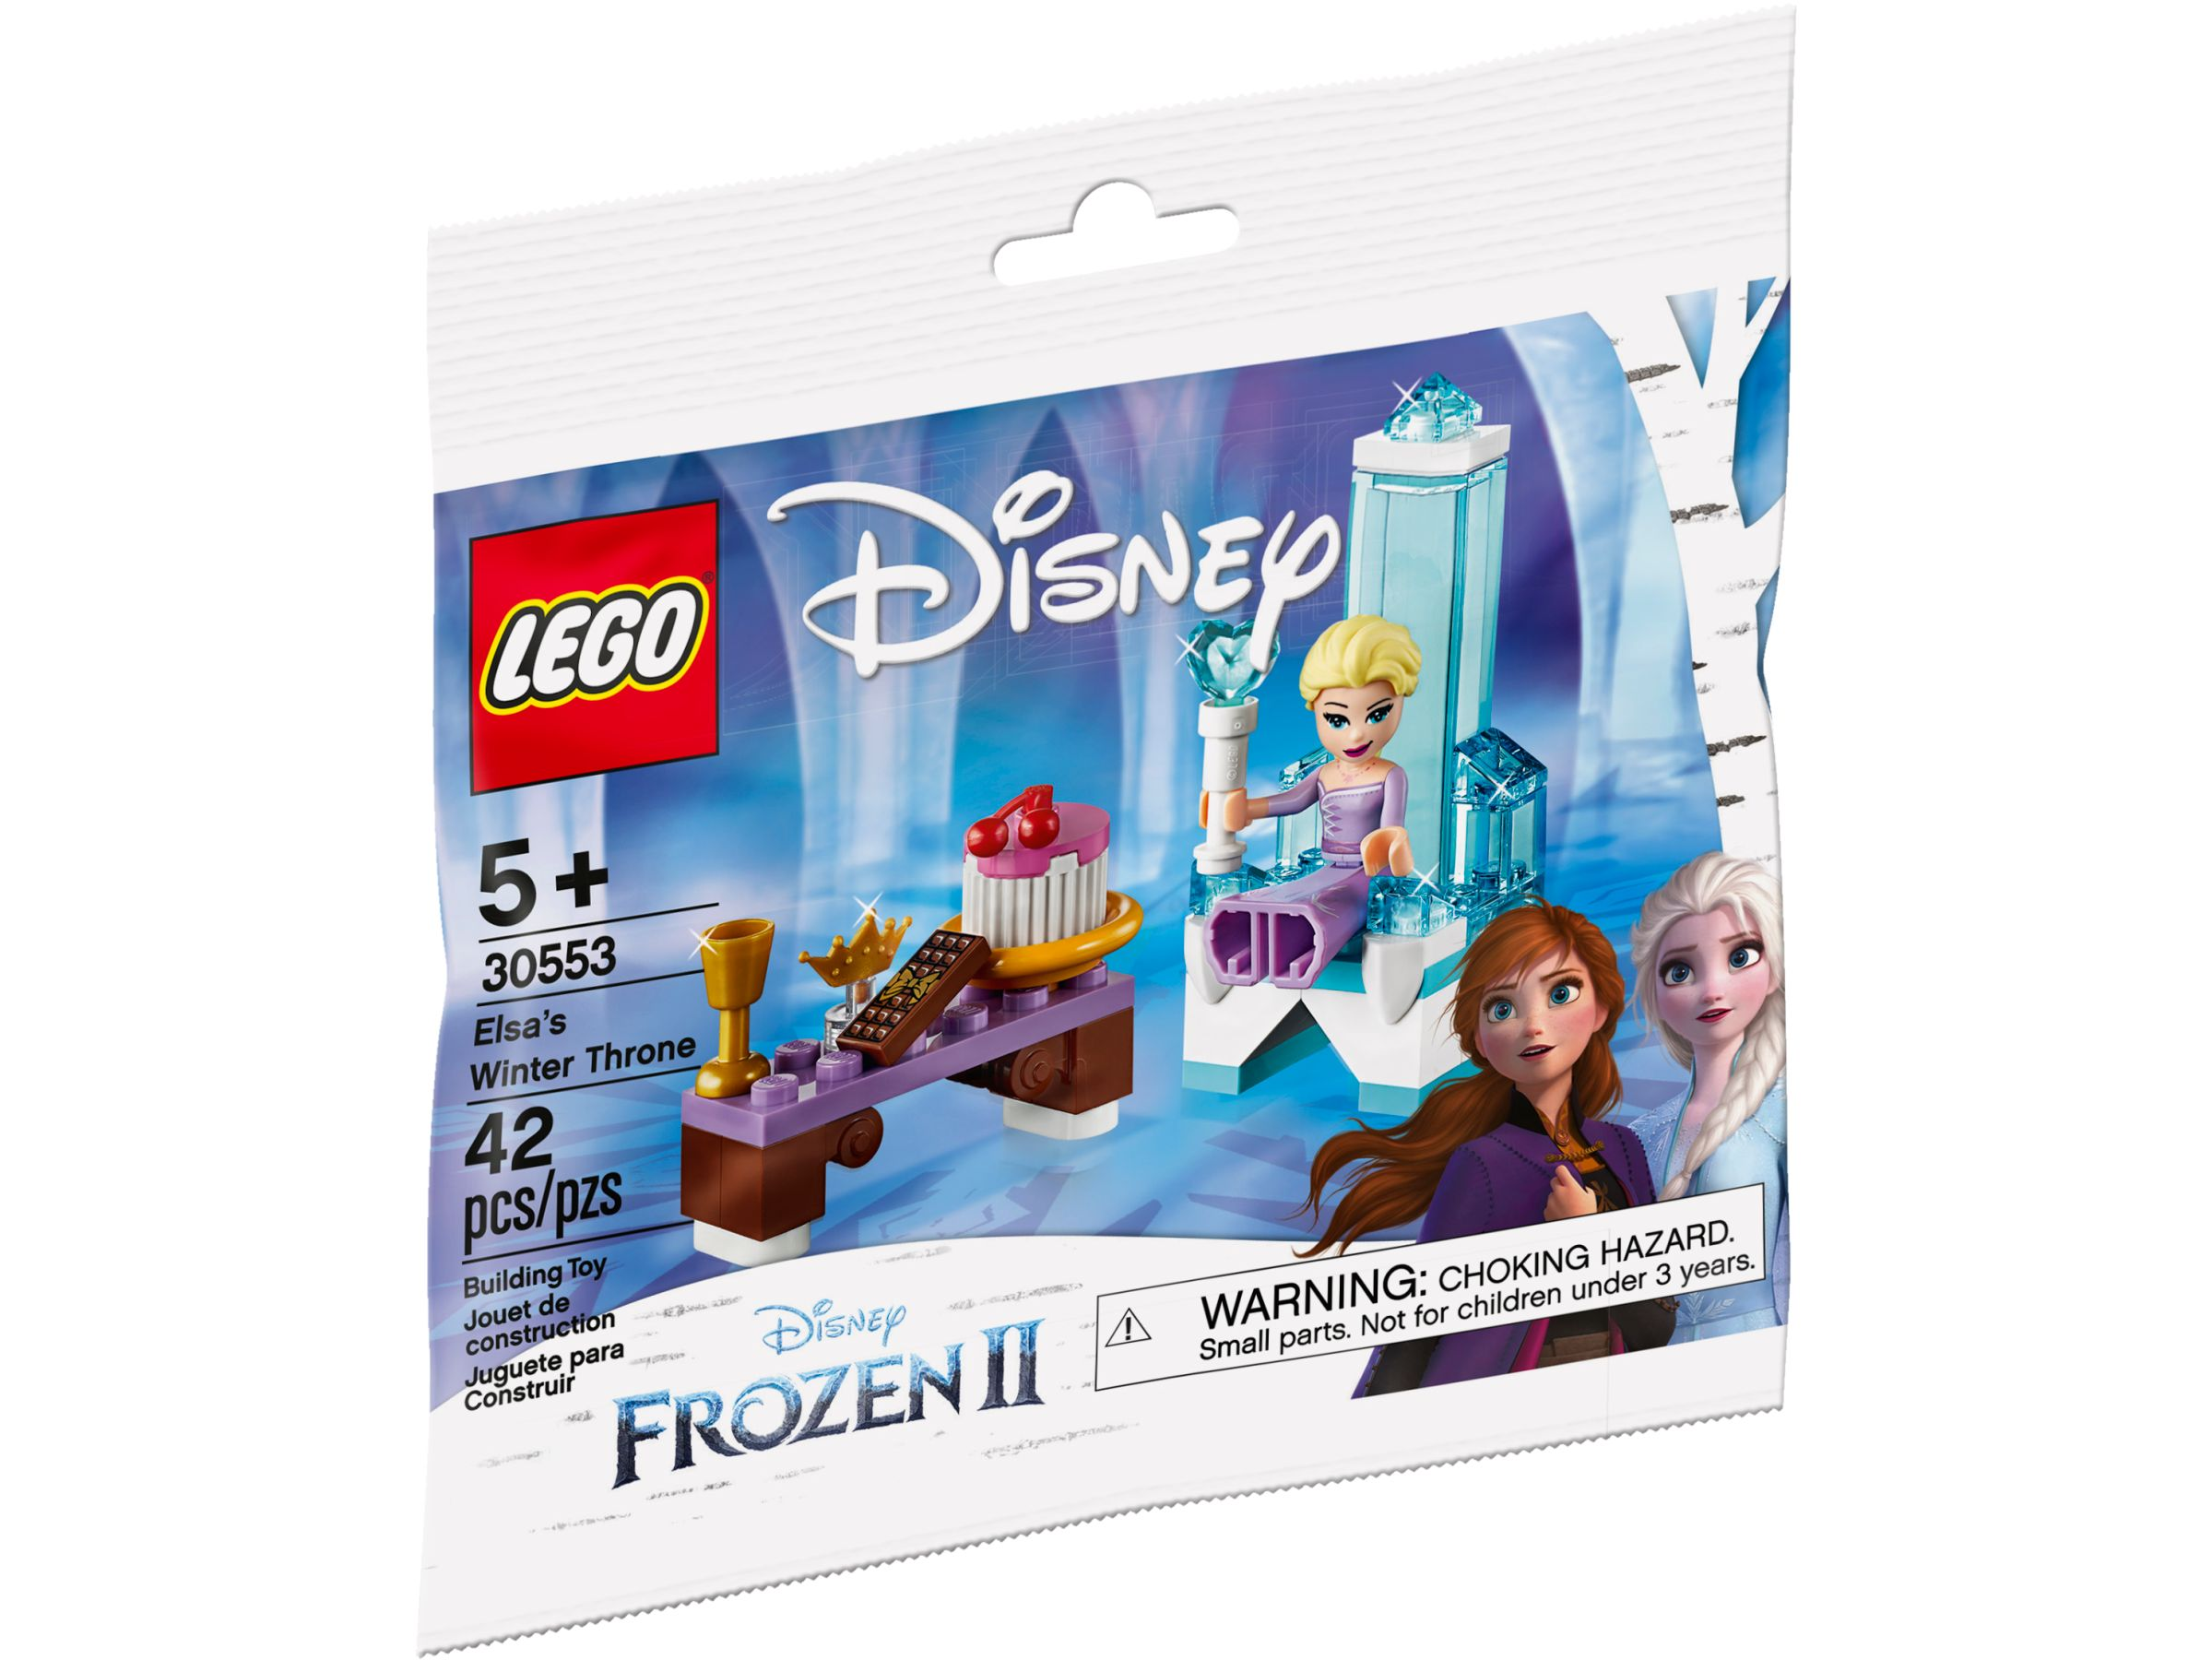 LEGO Disney 30553 Elsa's Winter Throne LEGO_30553_alt1.jpg